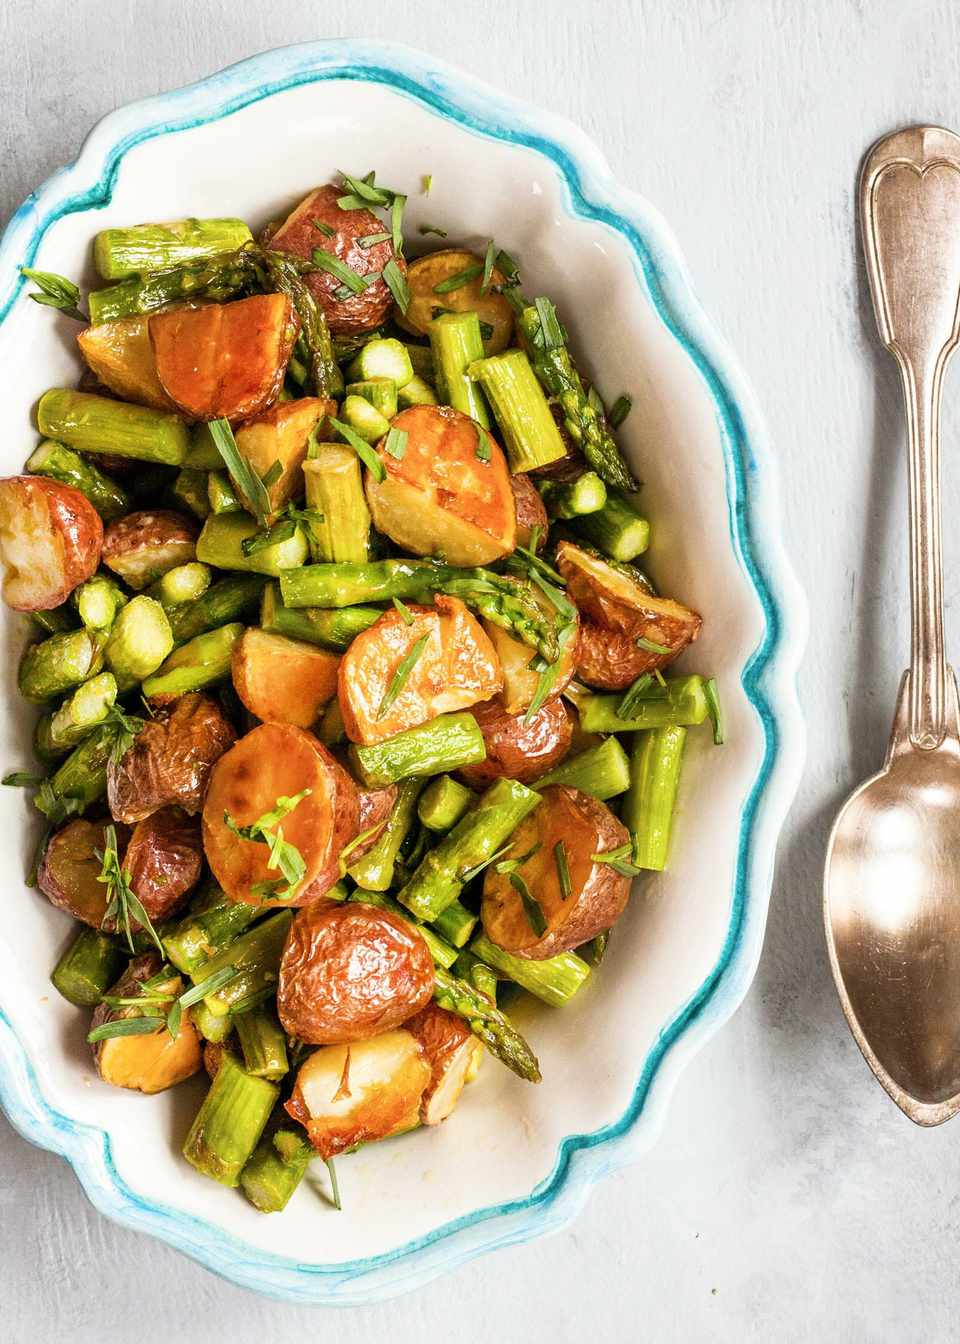 Asparagus with potatoes and recipe